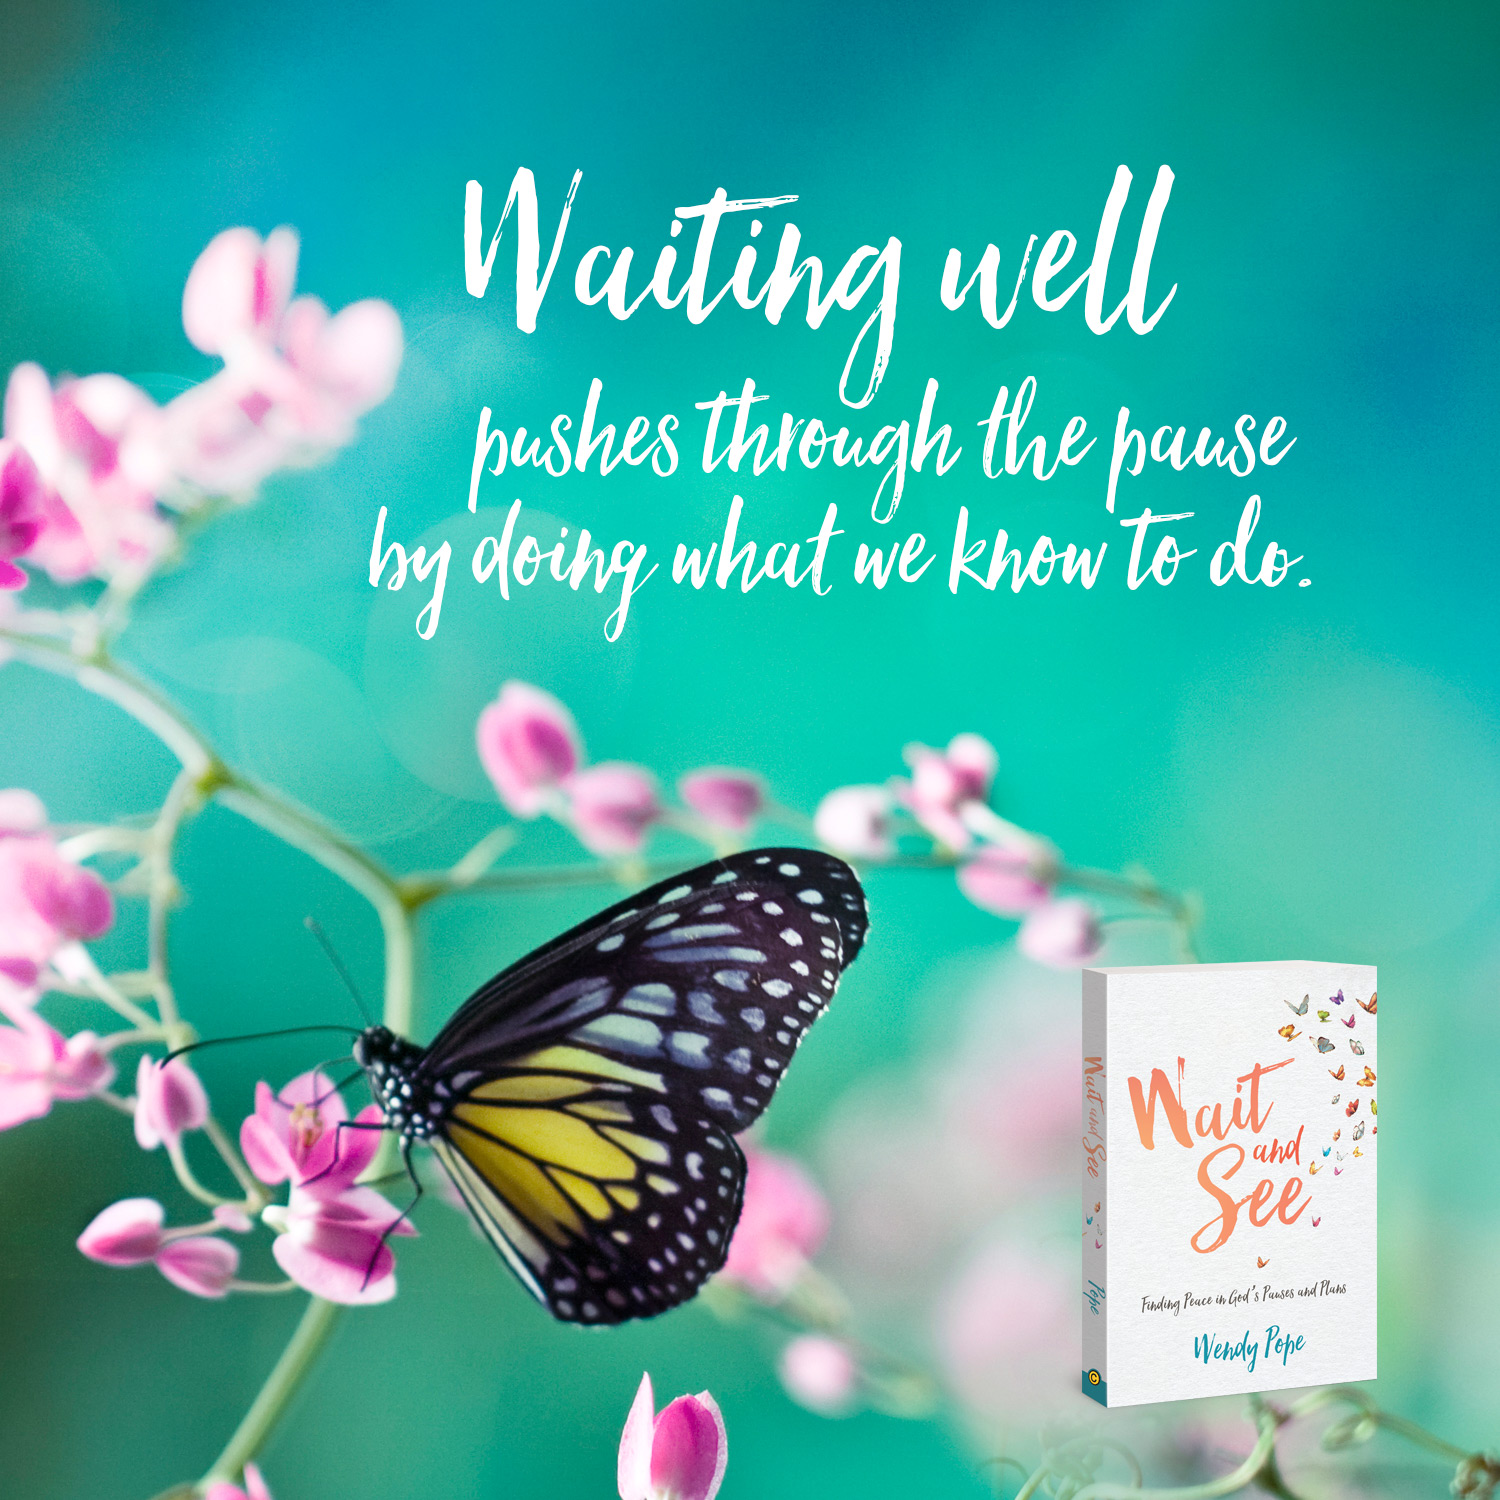 Waiting well pushes through the pause by doing what we know to do.